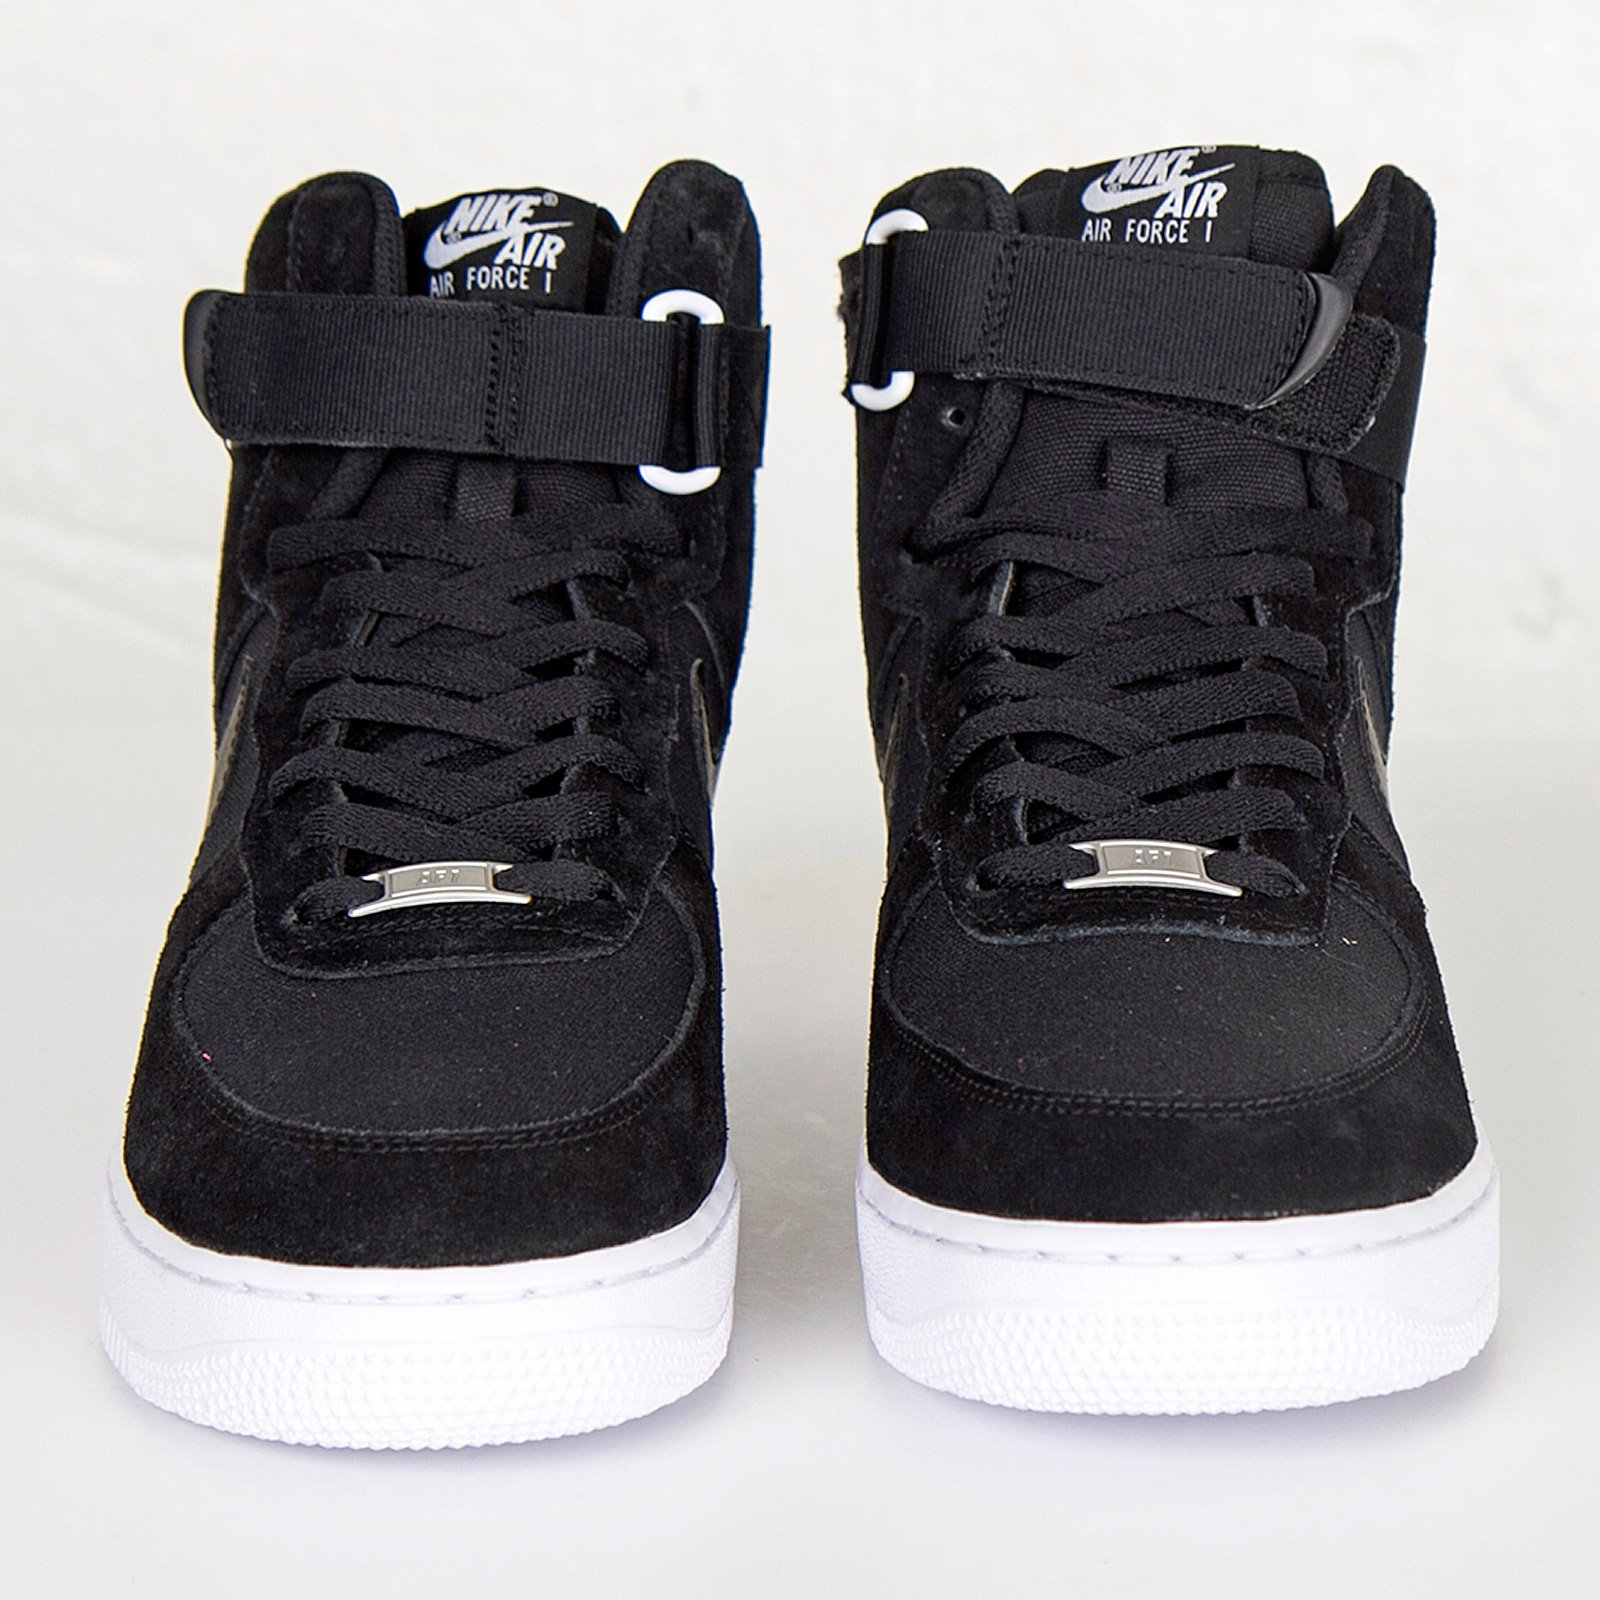 on sale 8481d f7170 ... coupon code nike air force 1 high 07 511b2 98e30